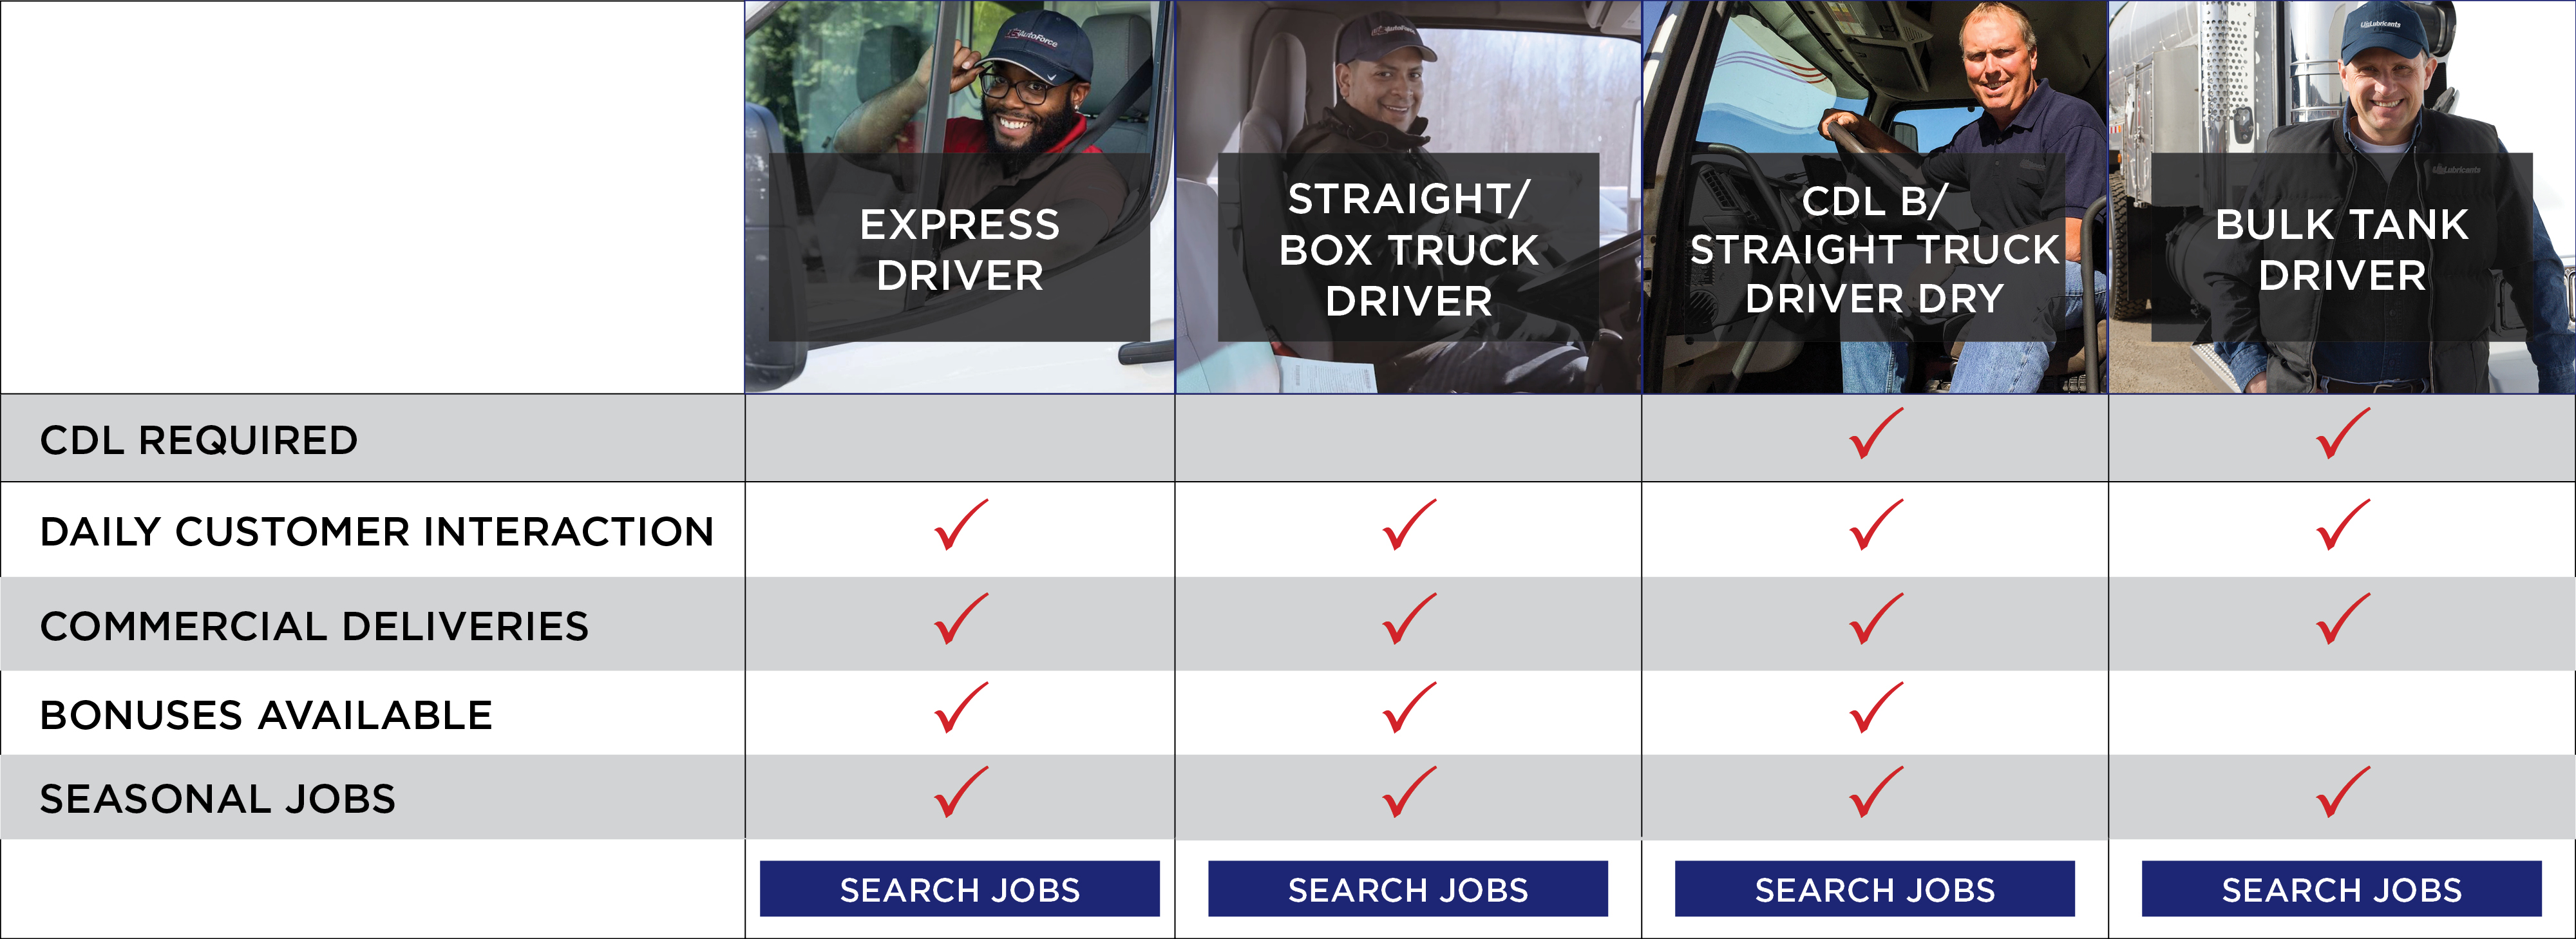 Driver Categories